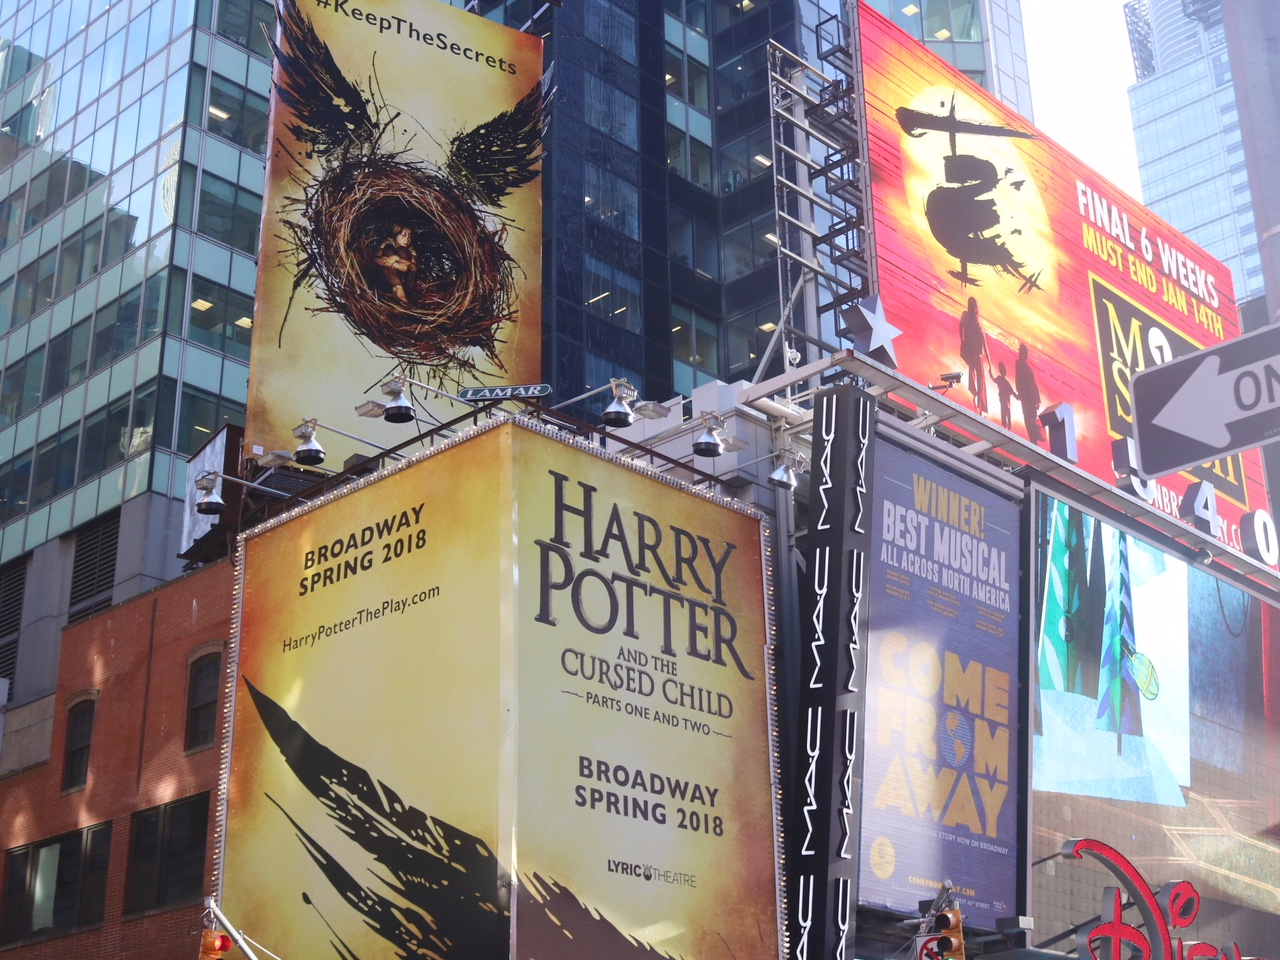 Harry Potter and the Cursed Child Broadway NYC